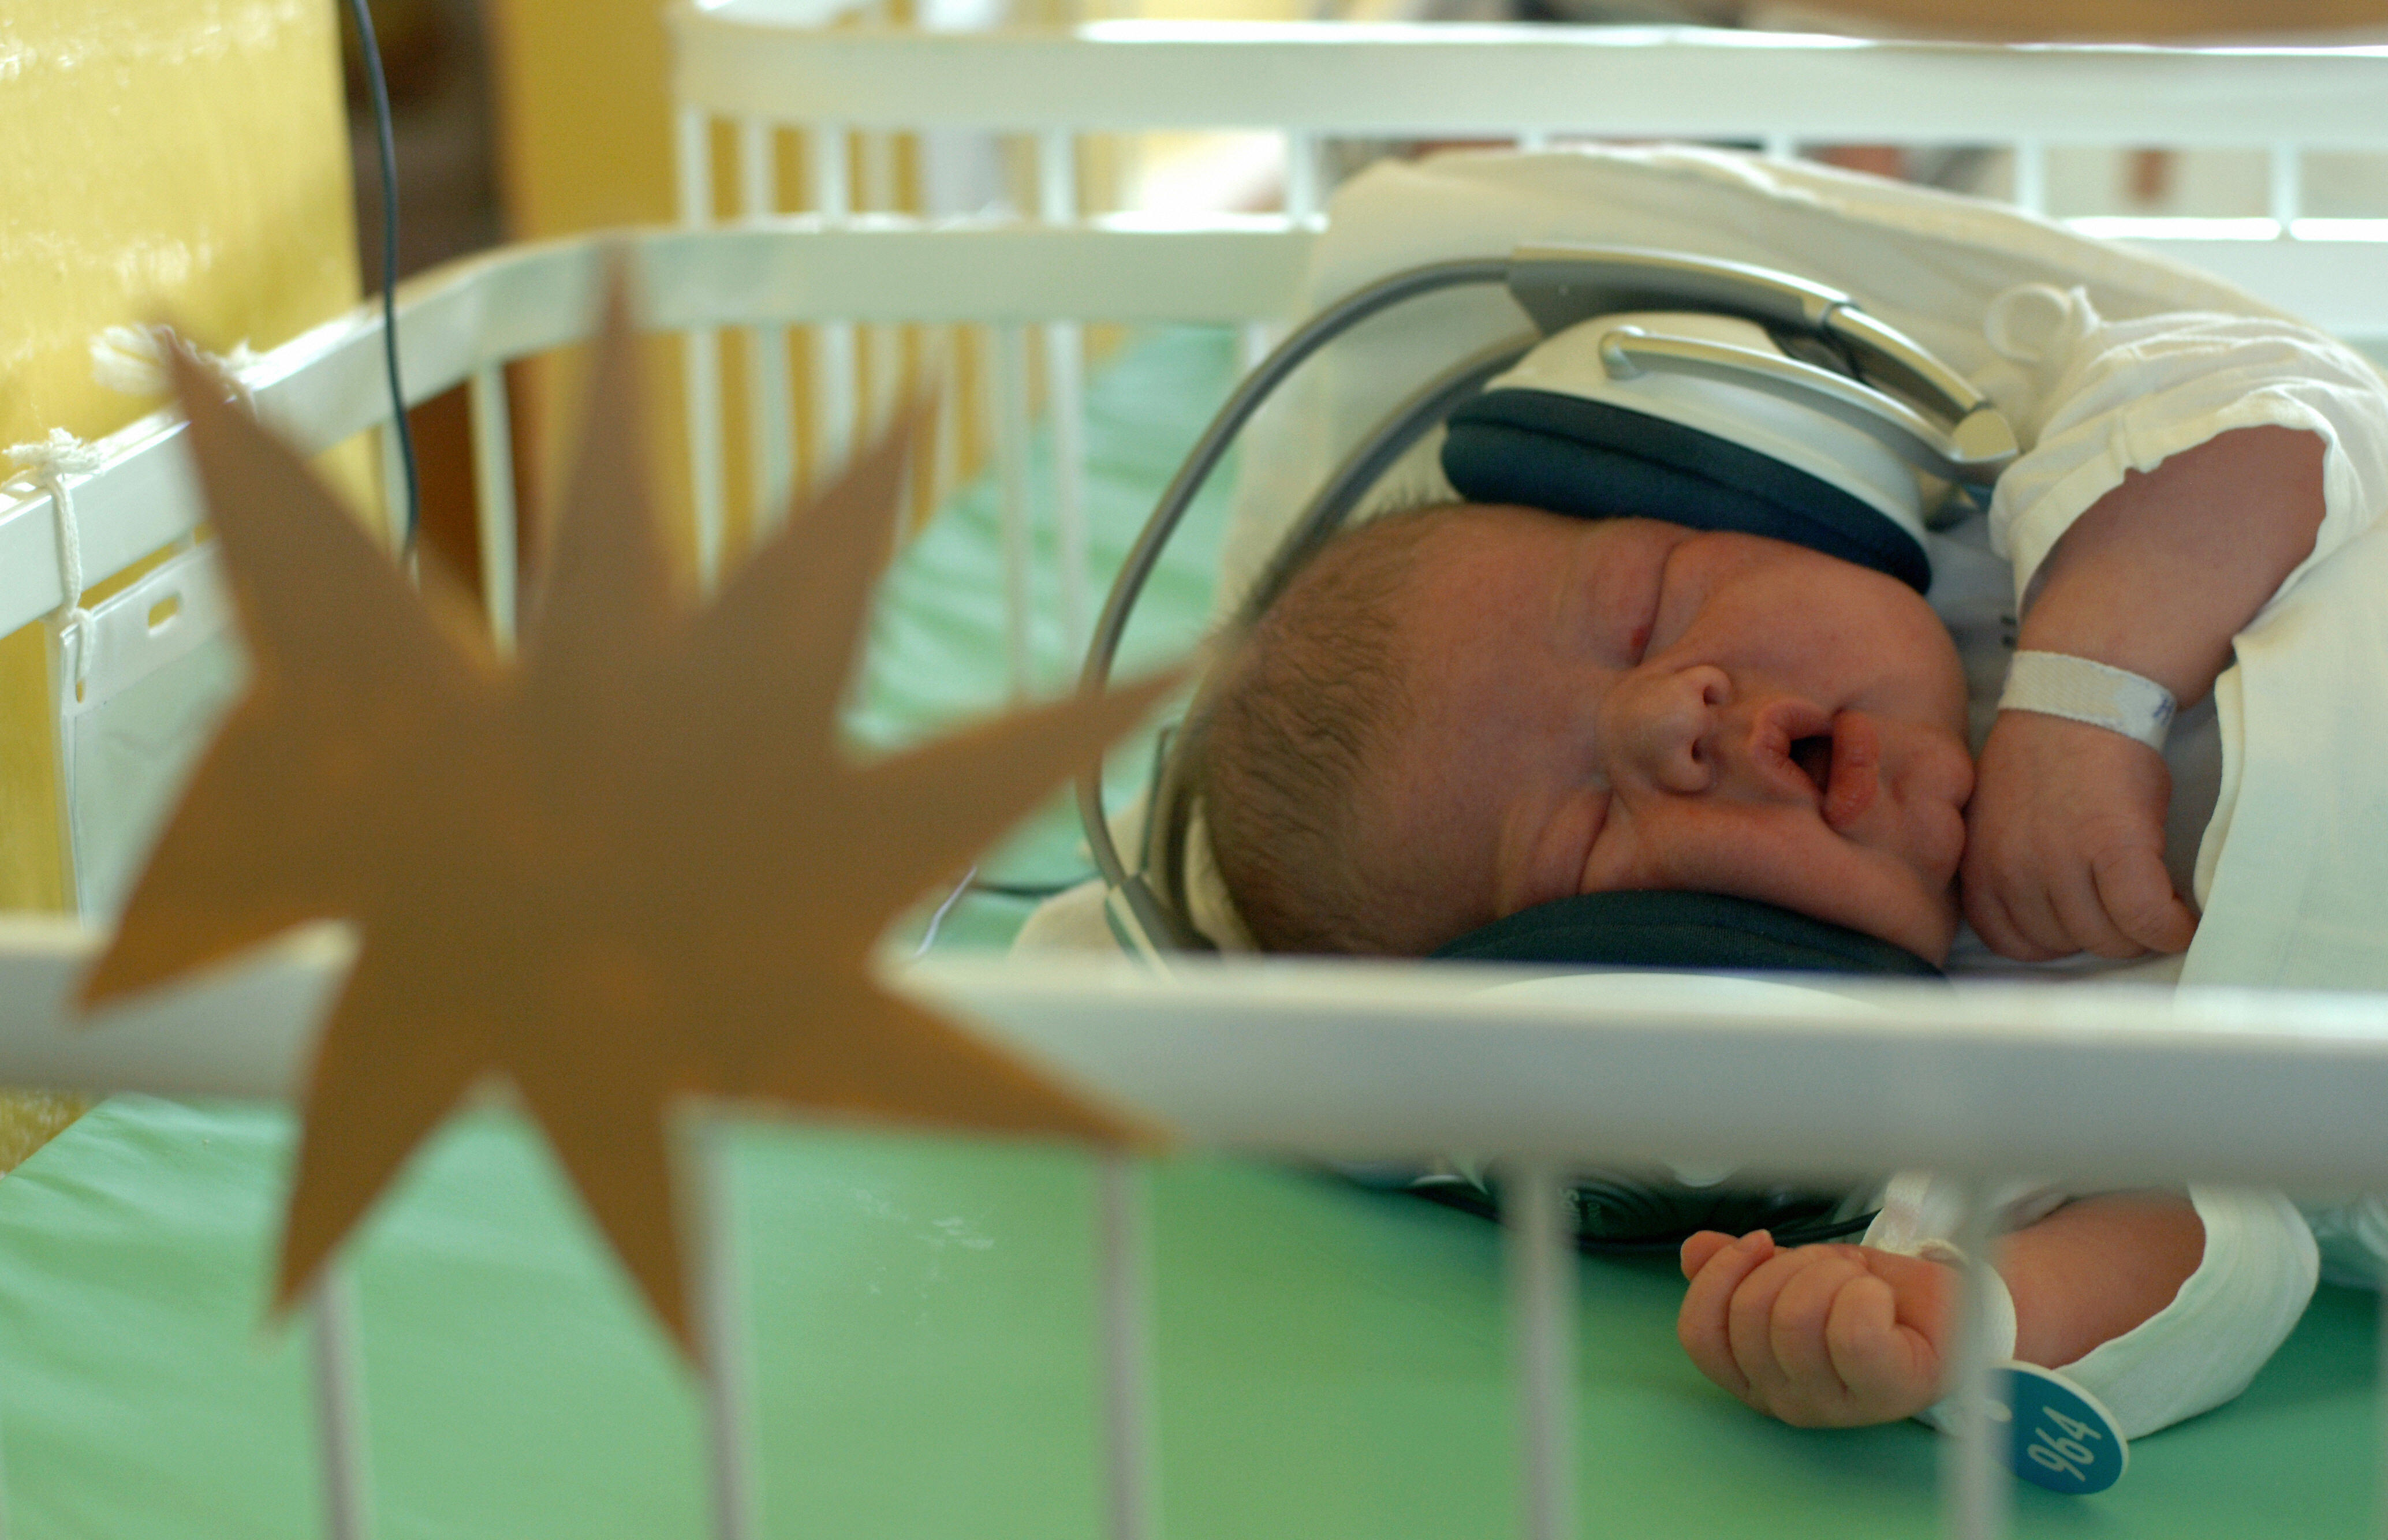 All Songs +1: What's The First Song A Newborn Should Hear?